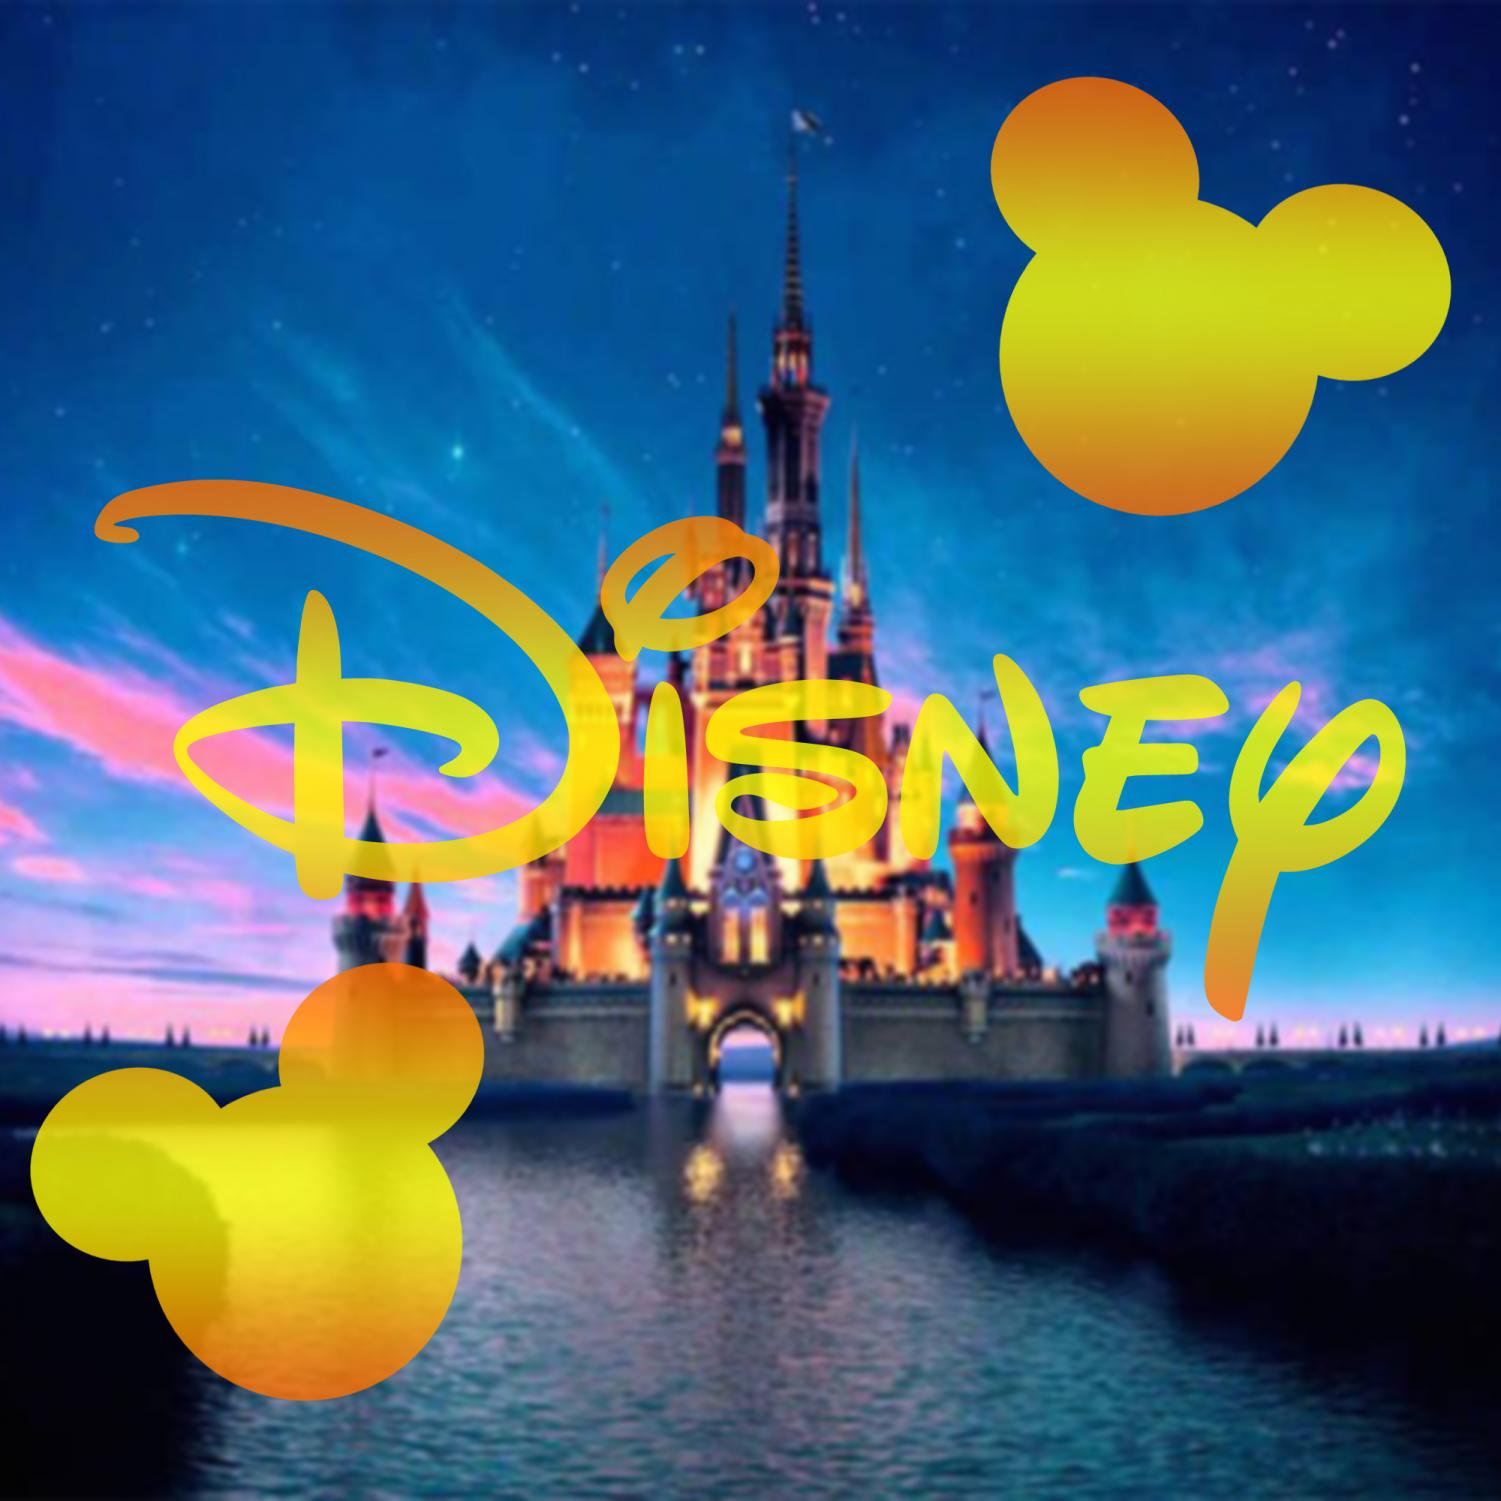 Walt Disney Studios plans many new movie releases for 2019. The plethora of films will more than likely take over the box offices.